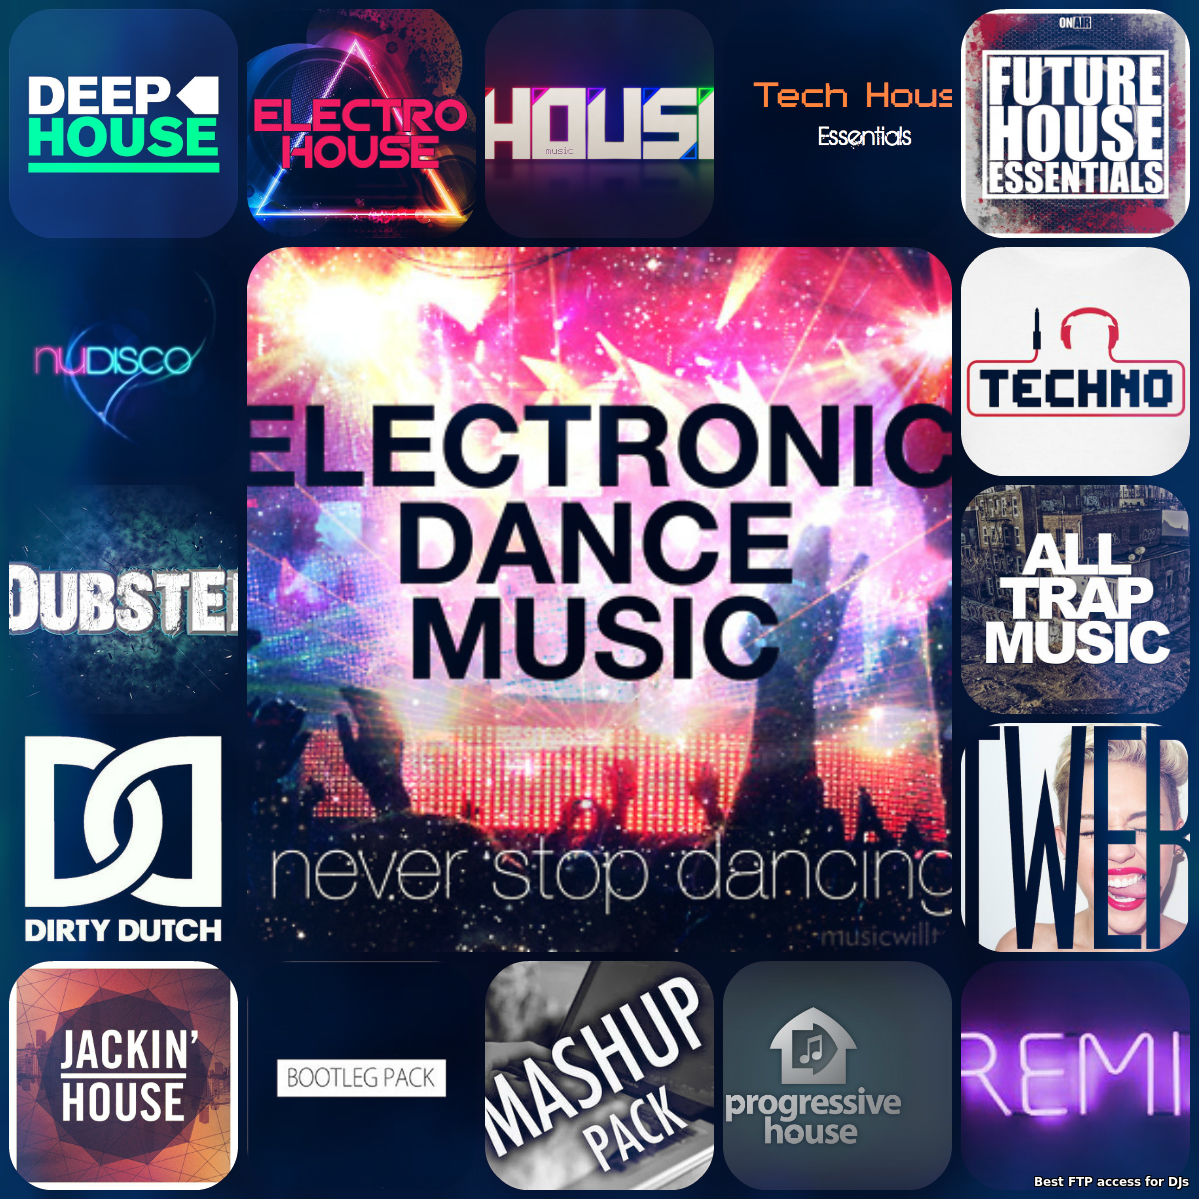 27 07 16 Daily Update Top EDM Tracks PART-2 (Tech House